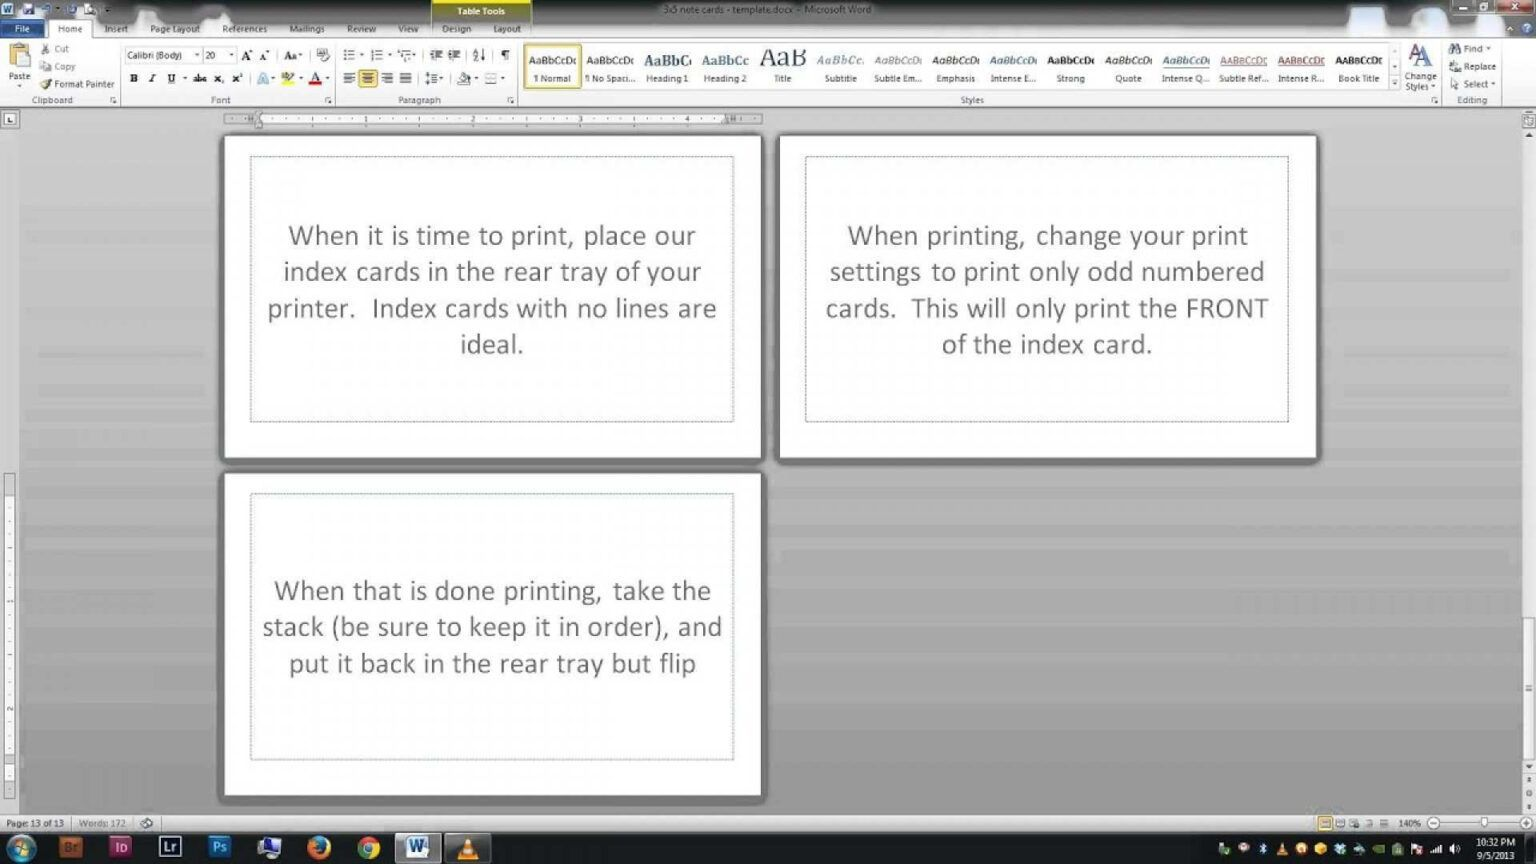 001 Rare 3x5 Index Card Template For Mac High Def Full